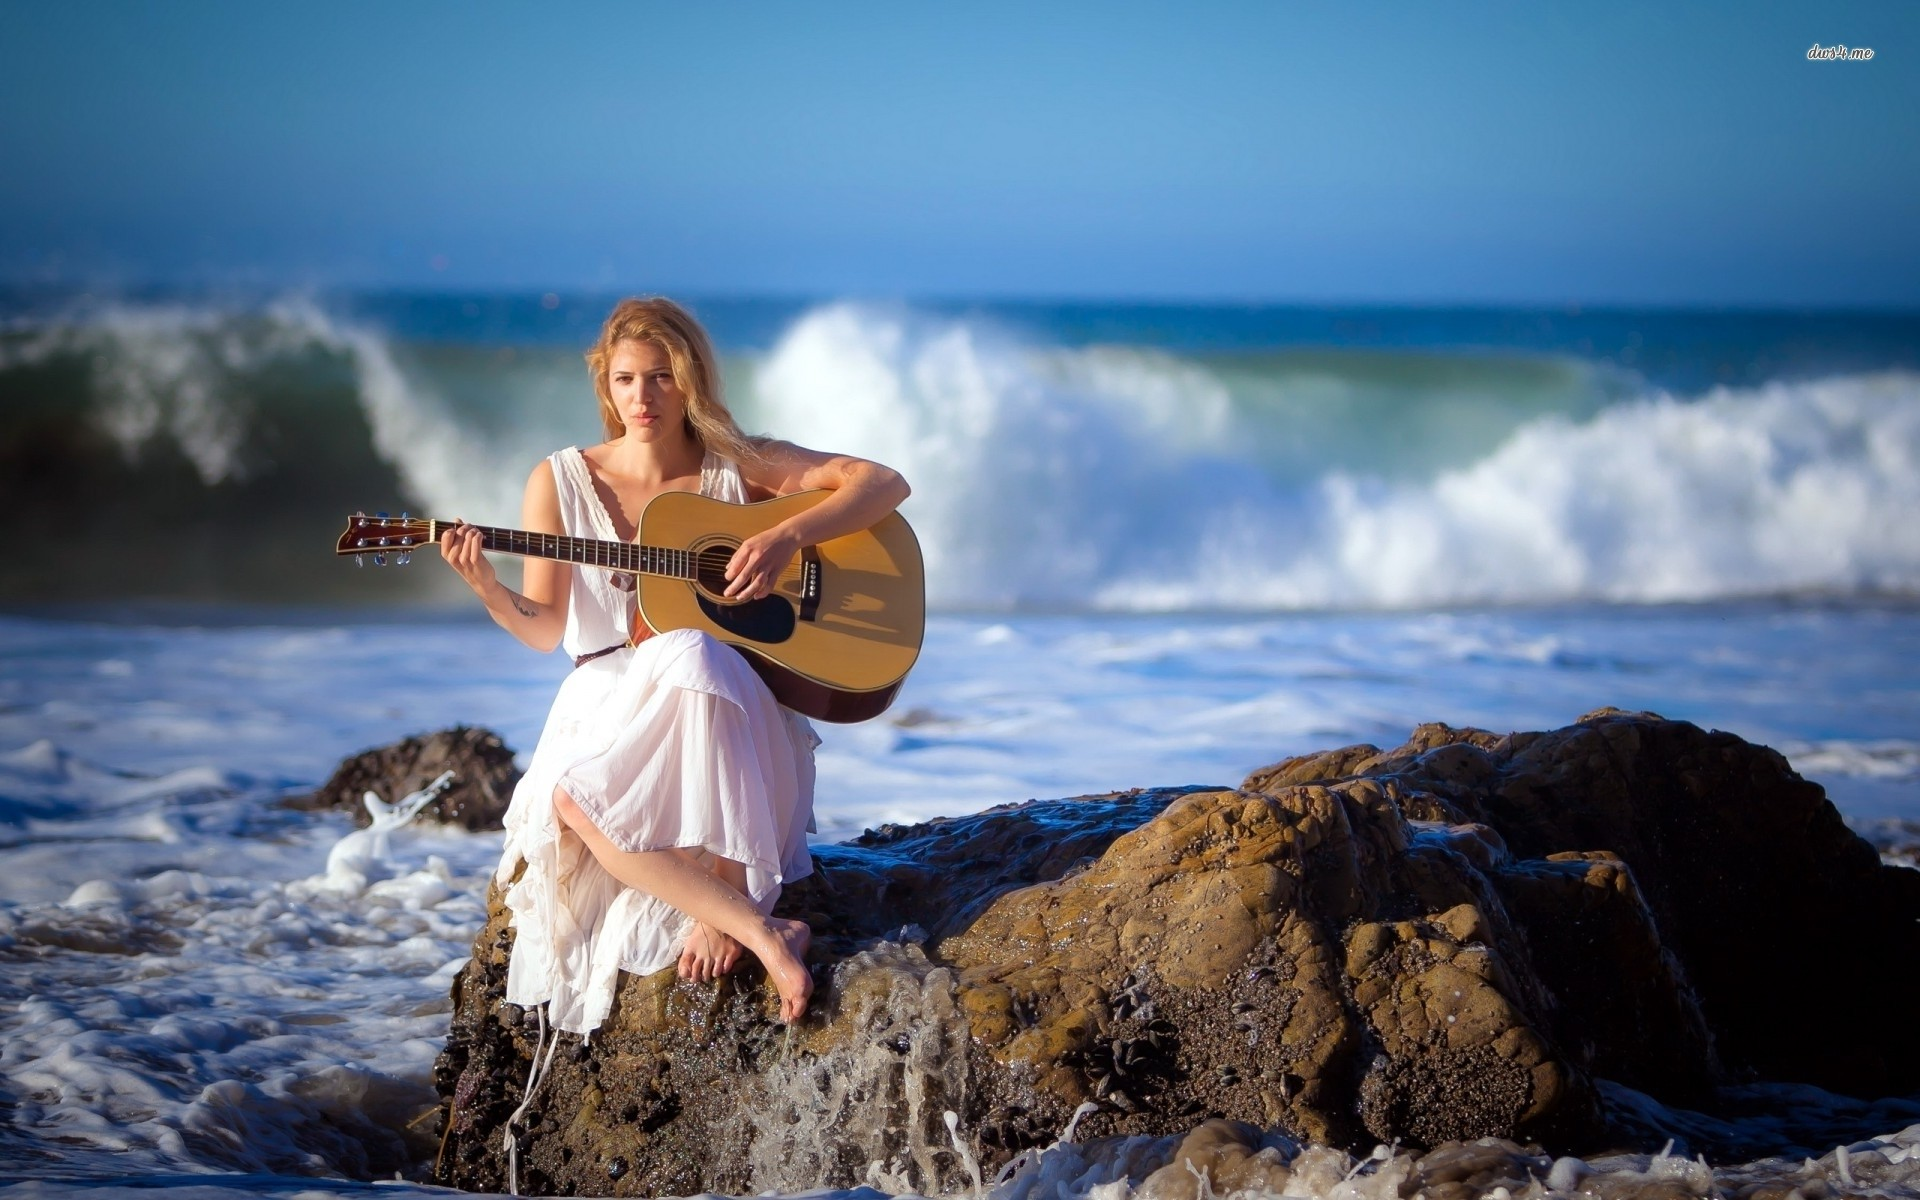 Res: 1920x1200, ... Blonde girl playing guitar on the rocky ocean shore wallpaper   ...